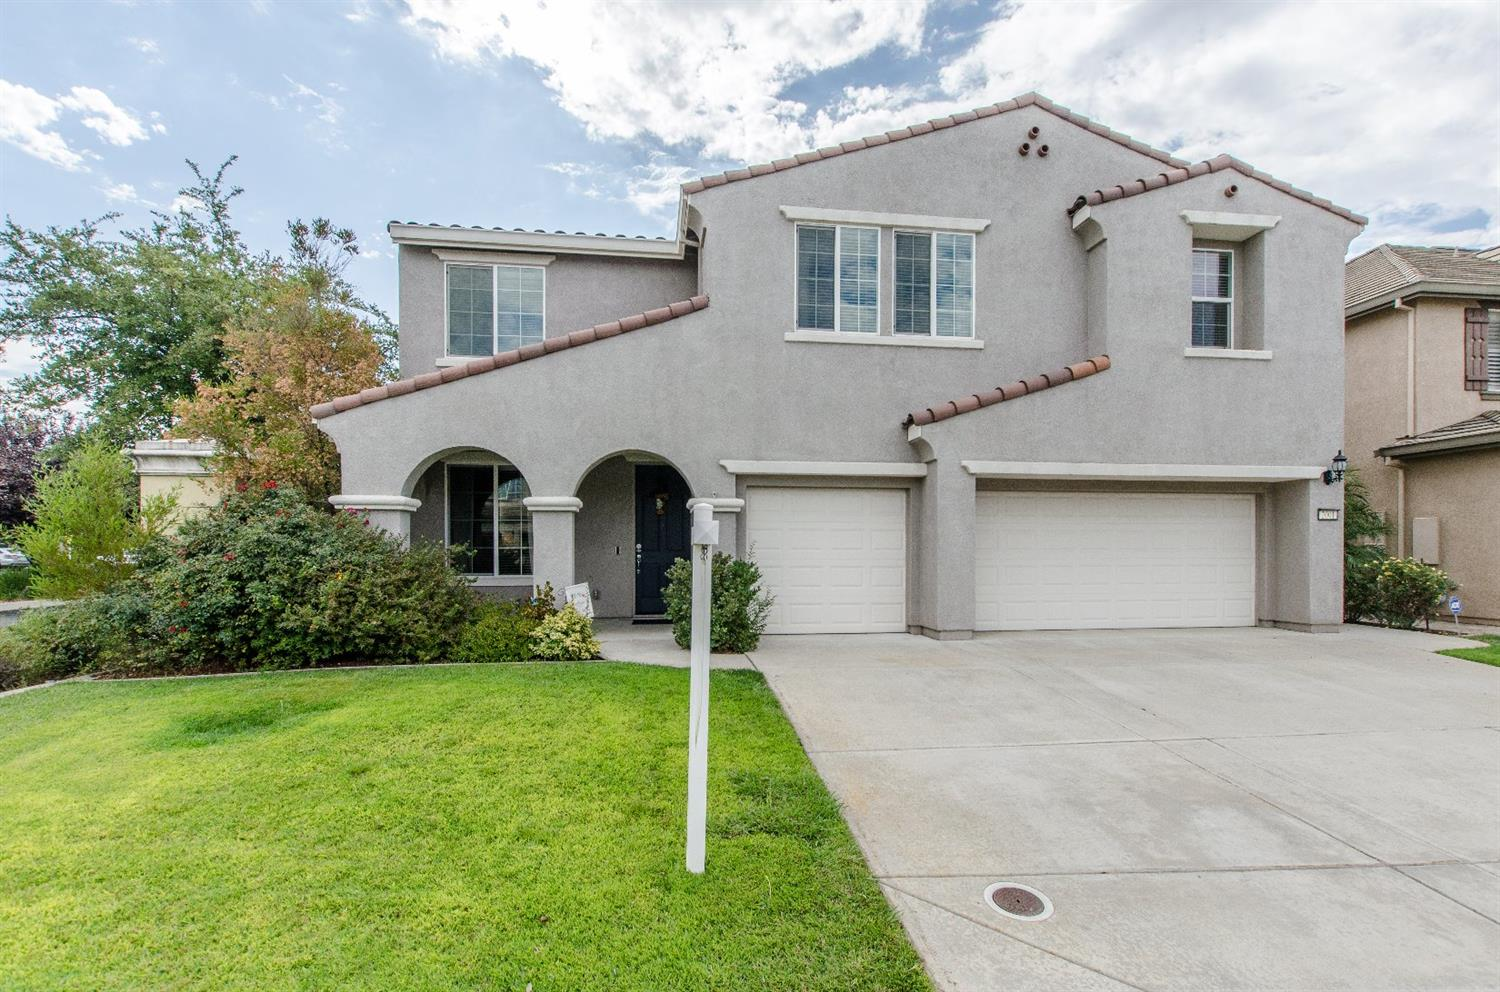 Single Family Home for sale in 2001 Stansfield Drive, Roseville, California ,95747